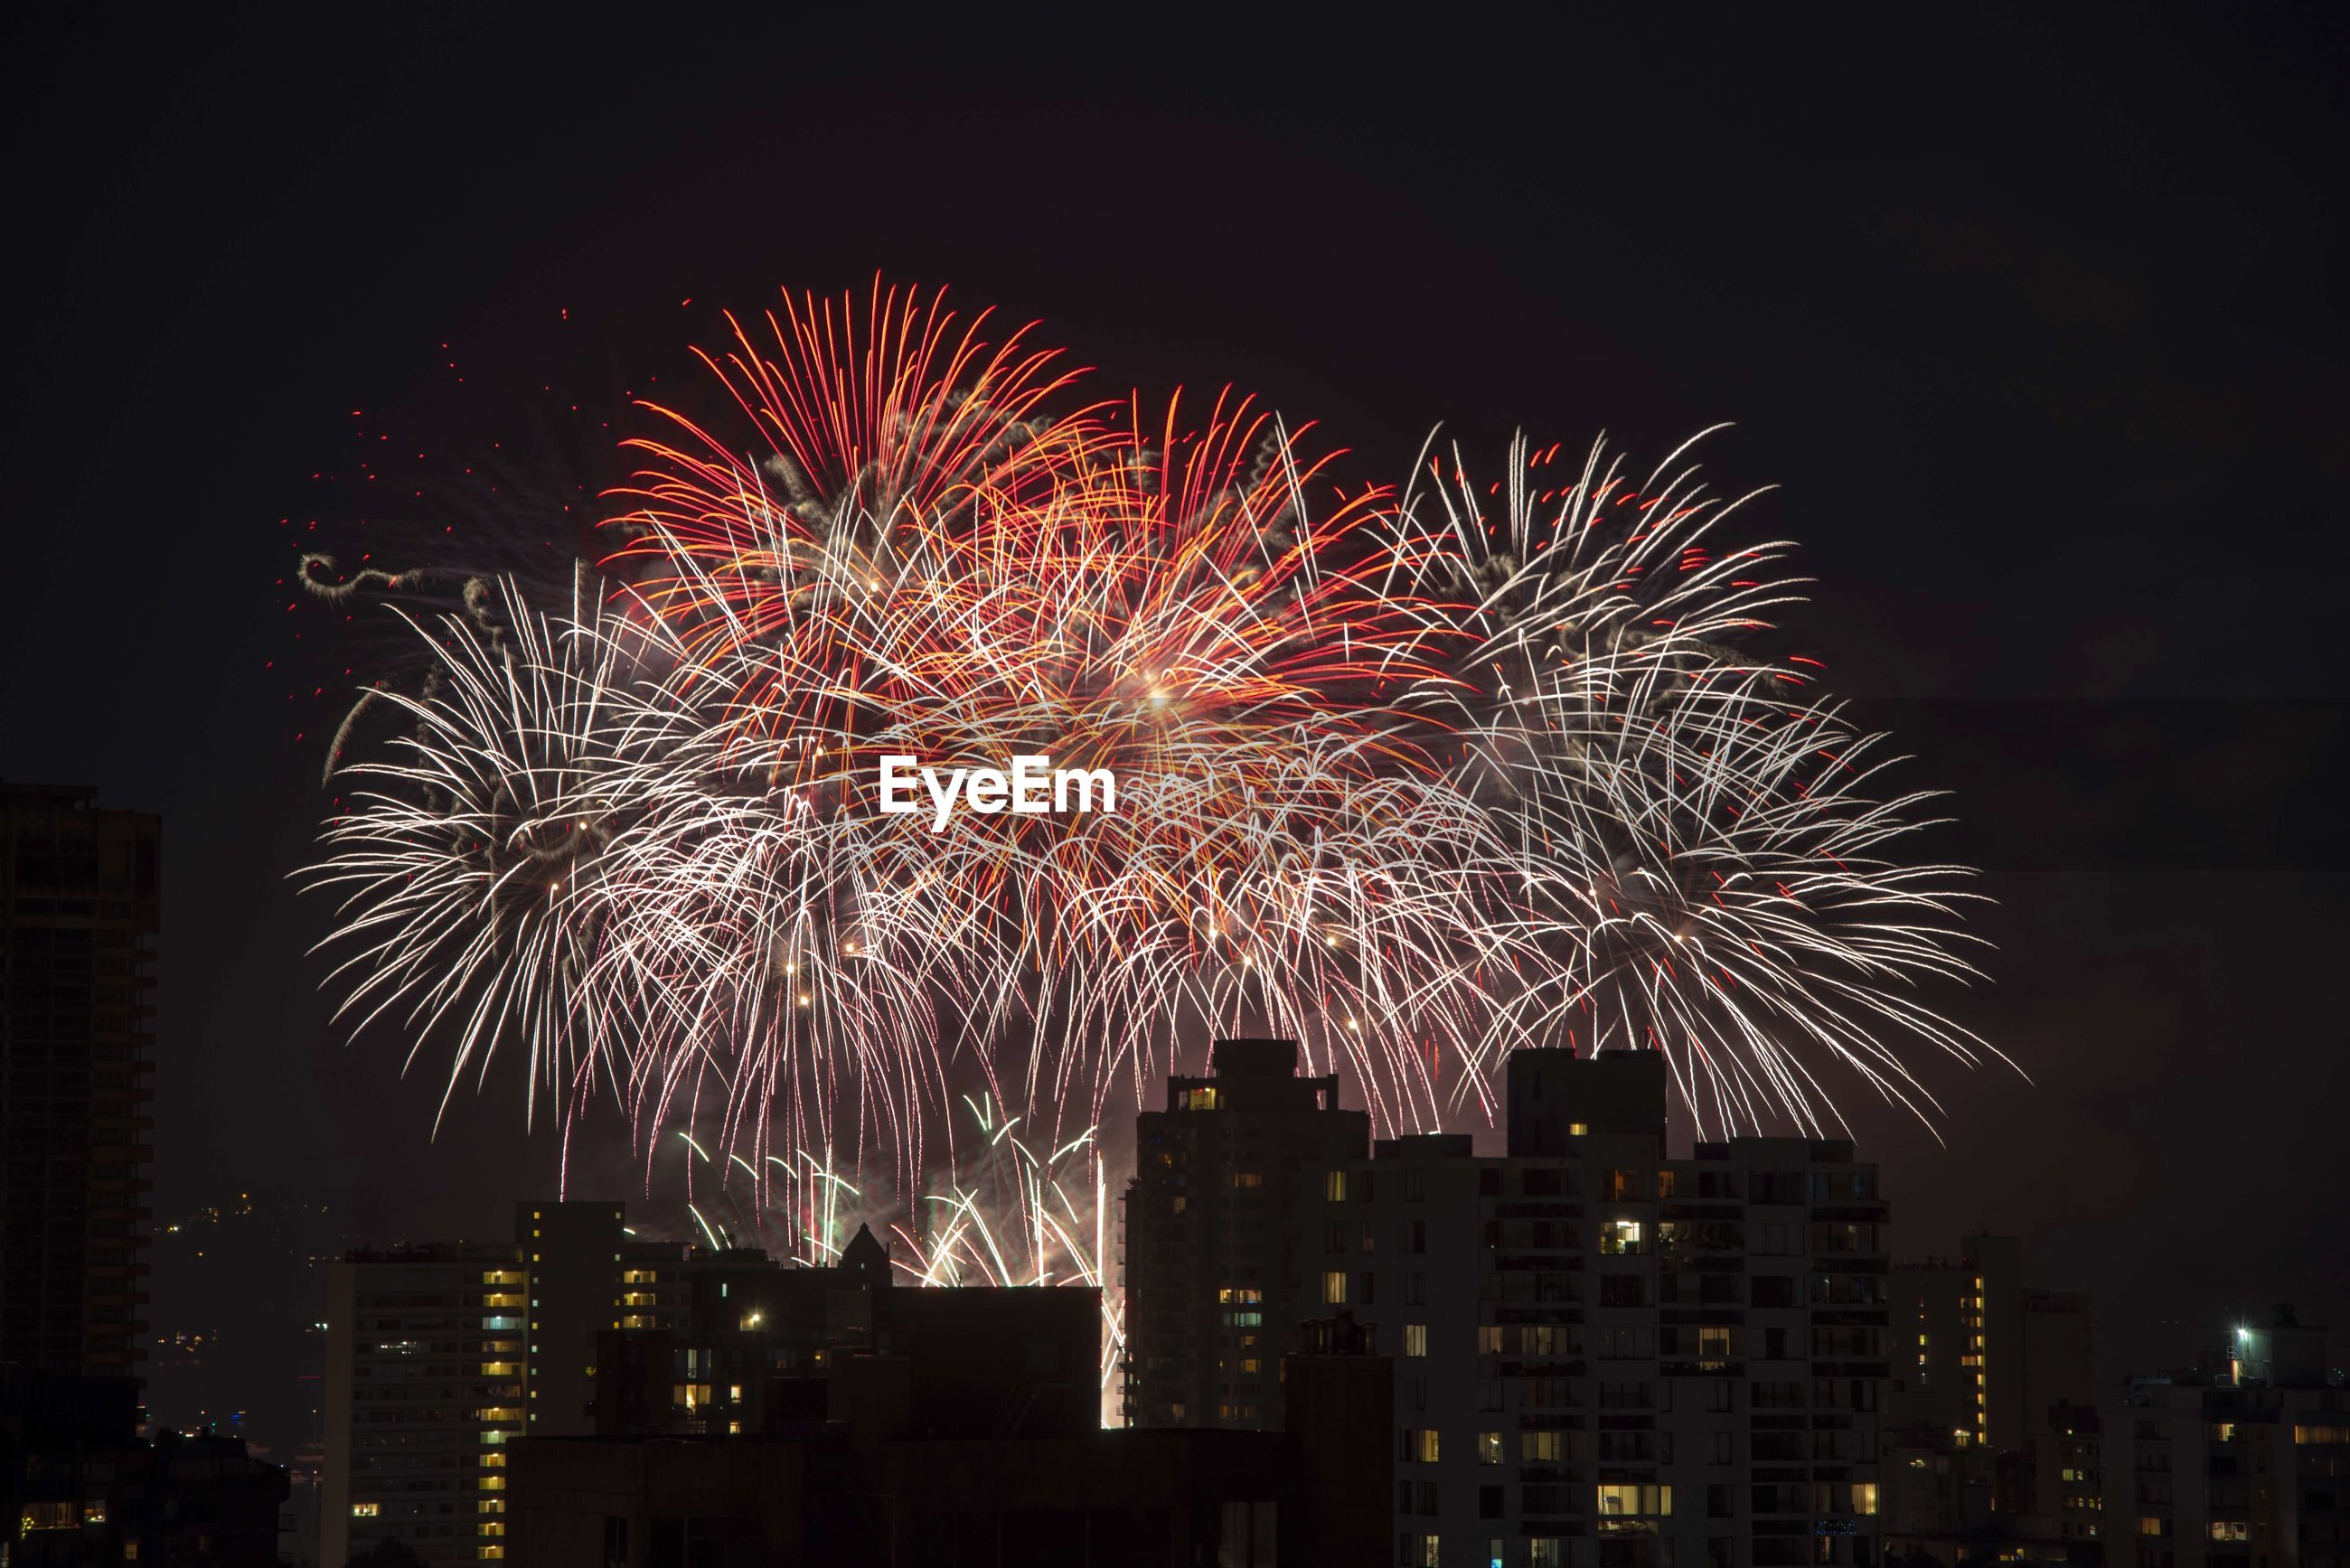 Firework display over cityscape at night